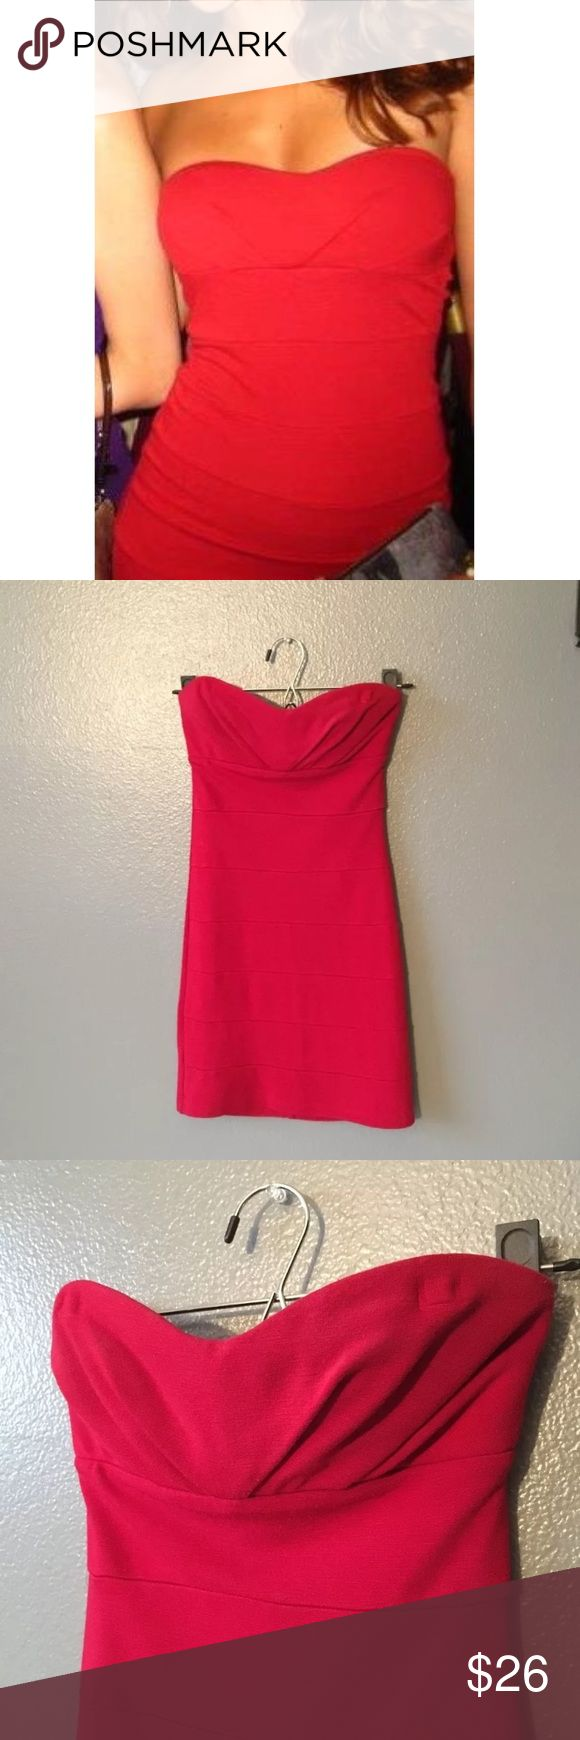 Sexy, hot red, zip up tube dress. Sweetheart neck Nothing more stunning than a simple and BOLD piece! Bold, stand-out-in-crowd, red! Forever 21 Dresses Mini